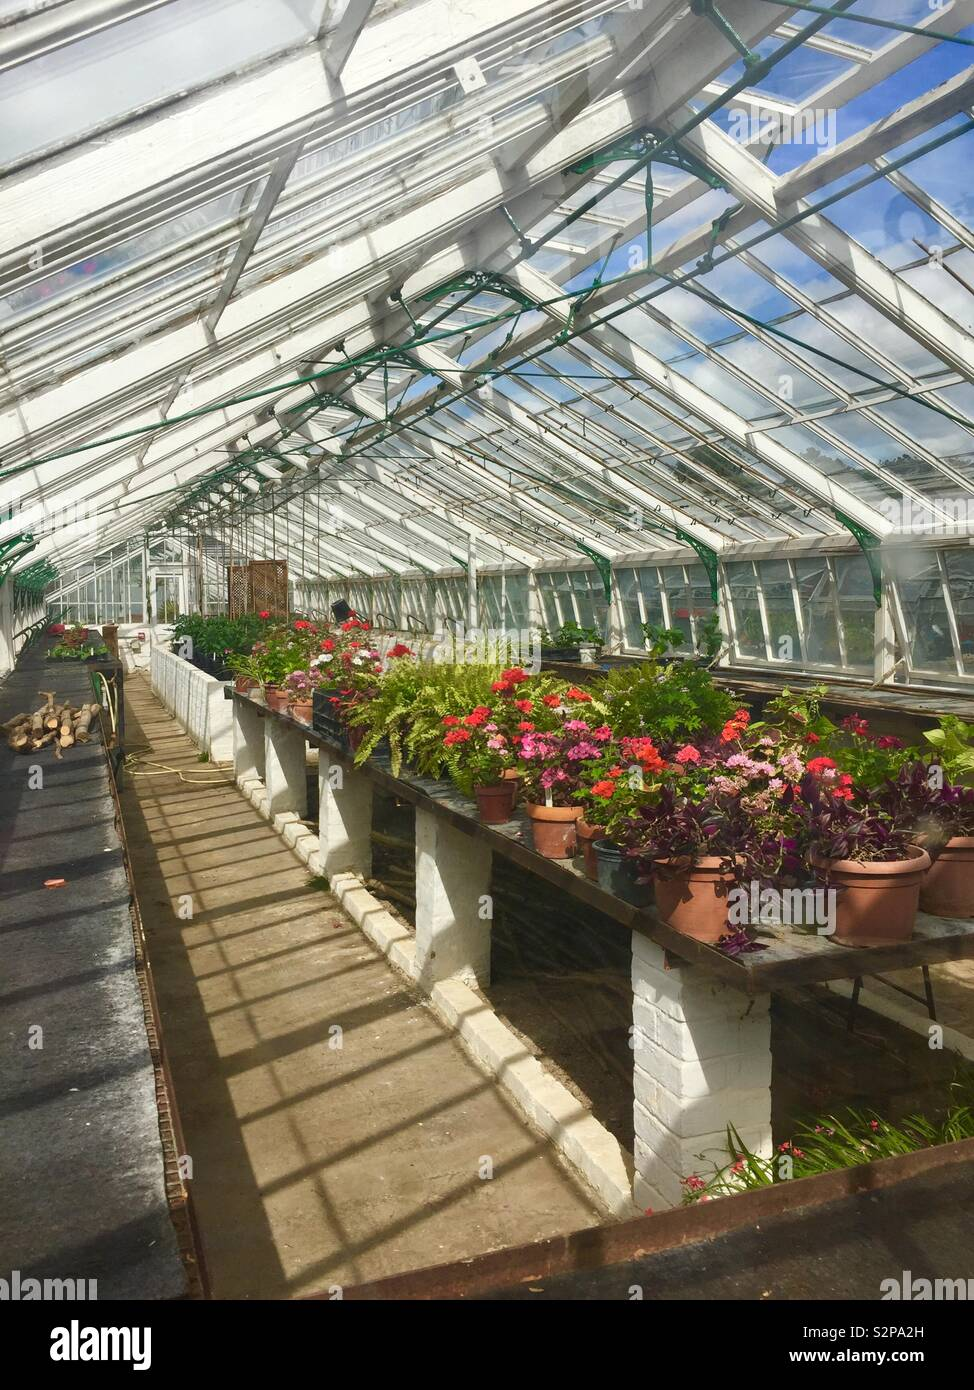 Sunshine in a greenhouse with pot plants - Stock Image